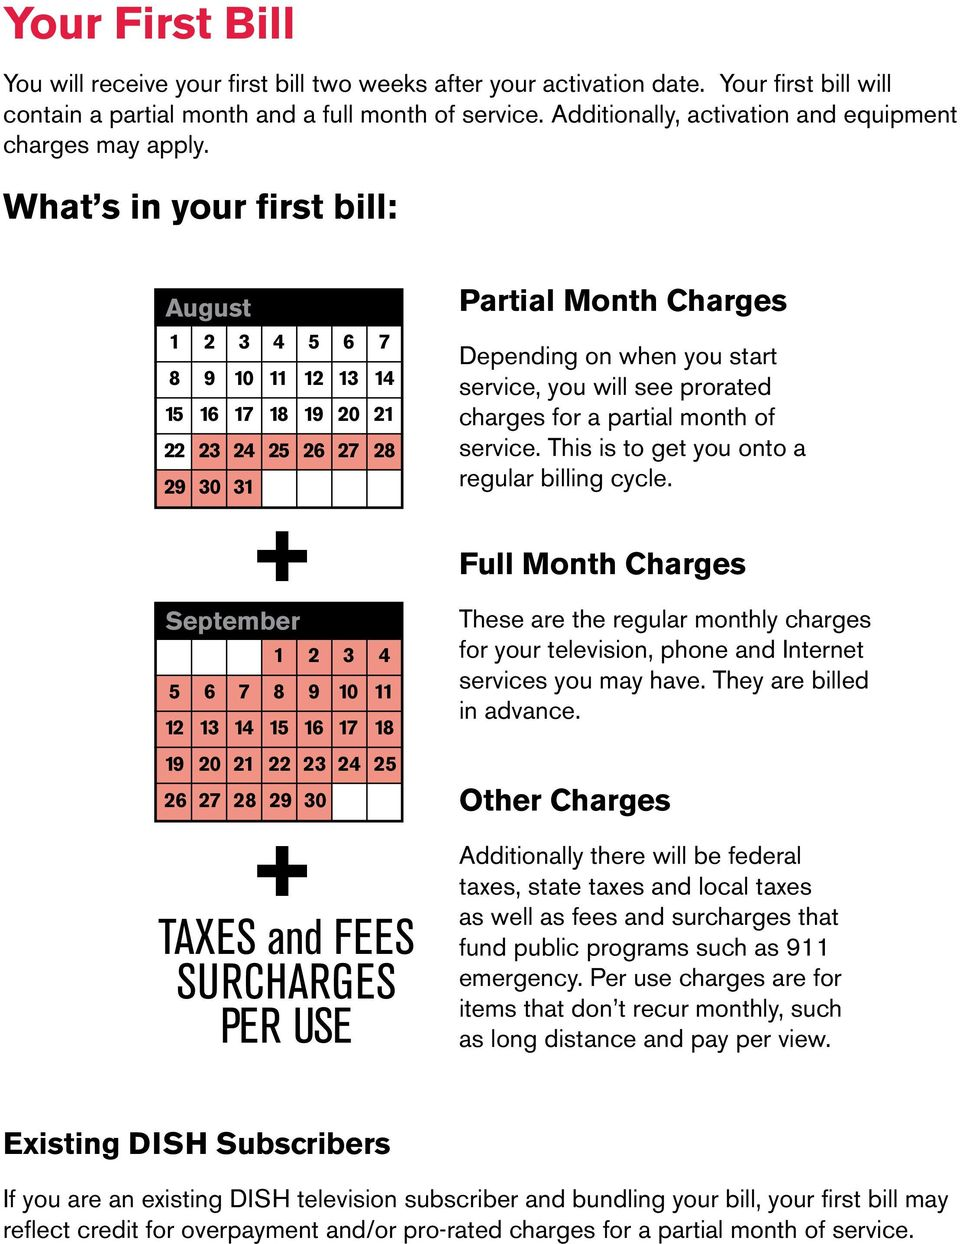 What s in your first bill: August Partial Month Charges 1 8 15 22 29 2 9 16 23 30 3 10 17 24 31 4 11 18 25 5 12 19 26 6 13 20 27 7 14 21 28 Depending on when you start service, you will see prorated